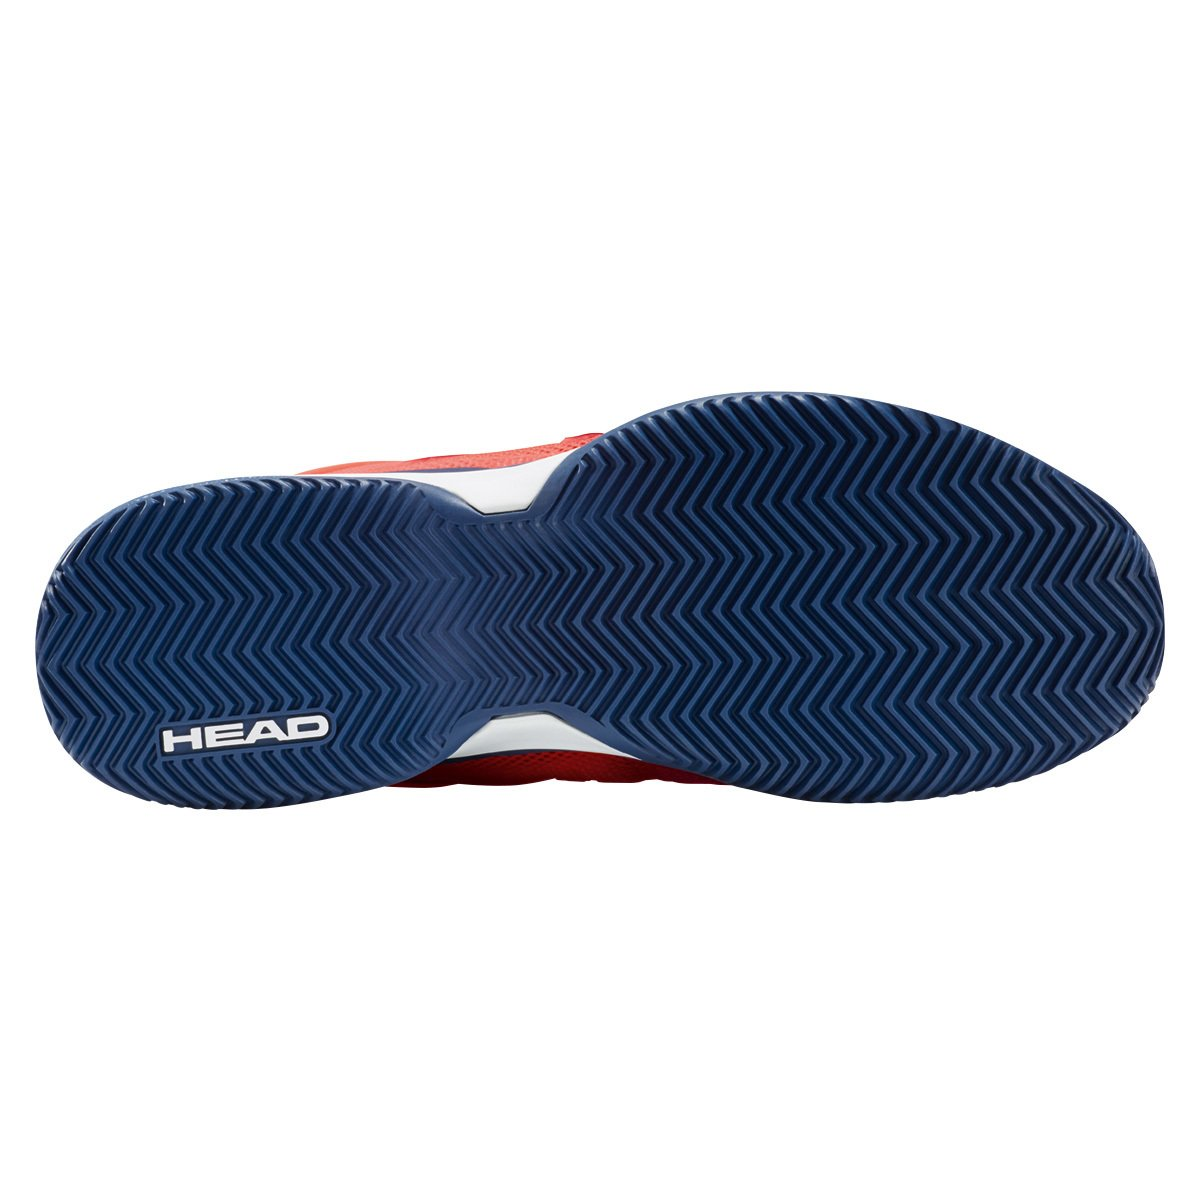 Head REVOLT PRO 2.5 CLAY AZUL NARANJA FLUOR 273018 BLFO: Amazon.es ...